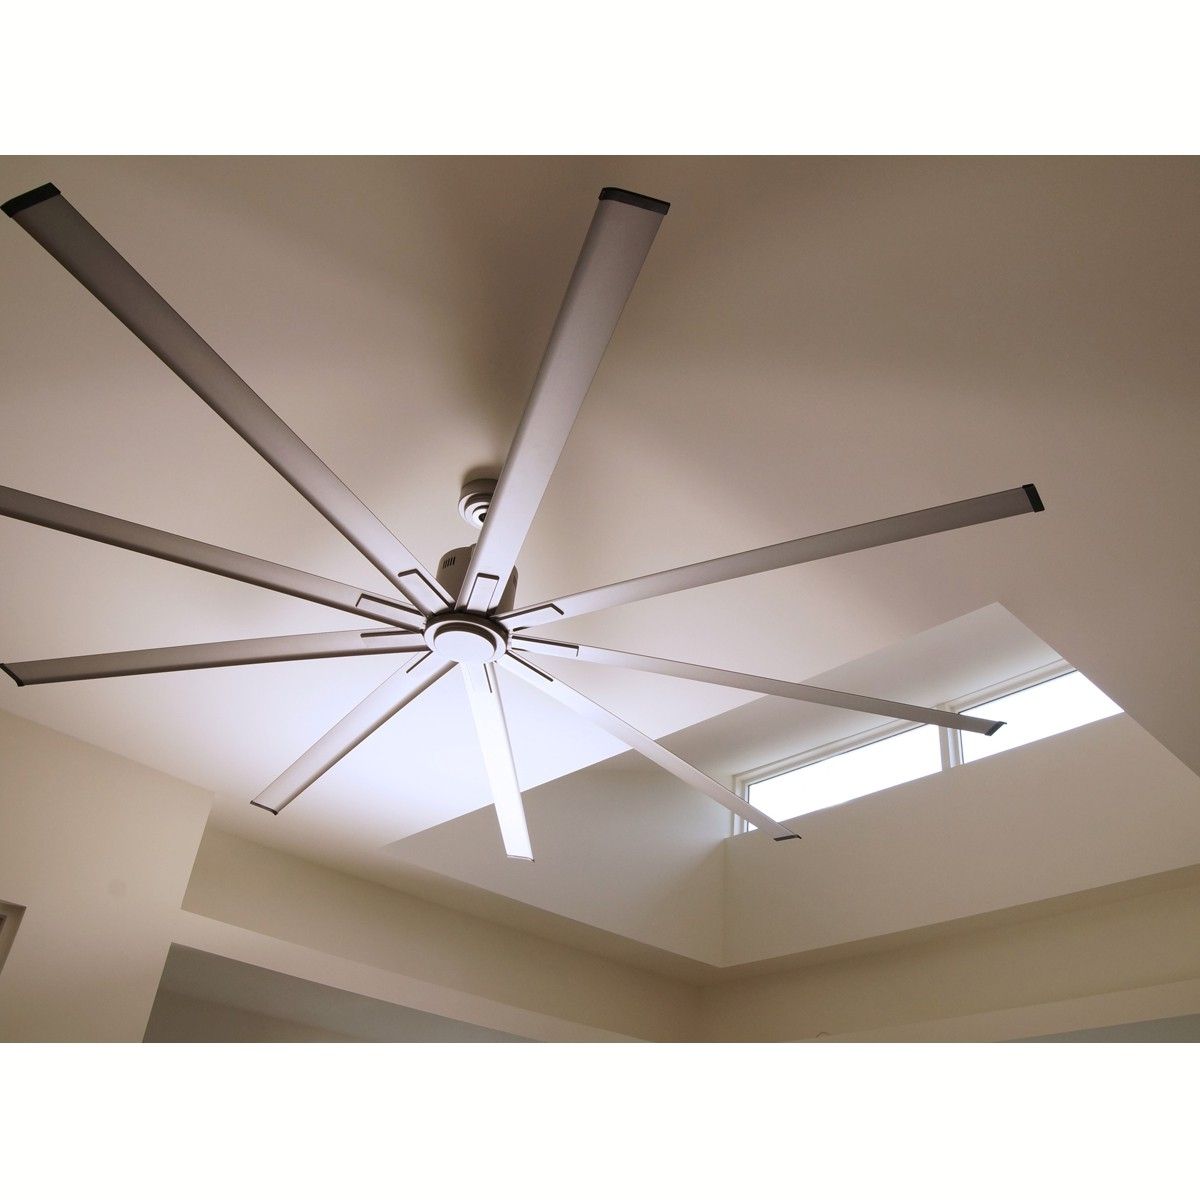 20 72 Ceiling Fan, 72 In 8 Blade Brushed Nickel Led Ceiling Fan With In Famous 72 Predator Bronze Outdoor Ceiling Fans With Light Kit (View 15 of 20)